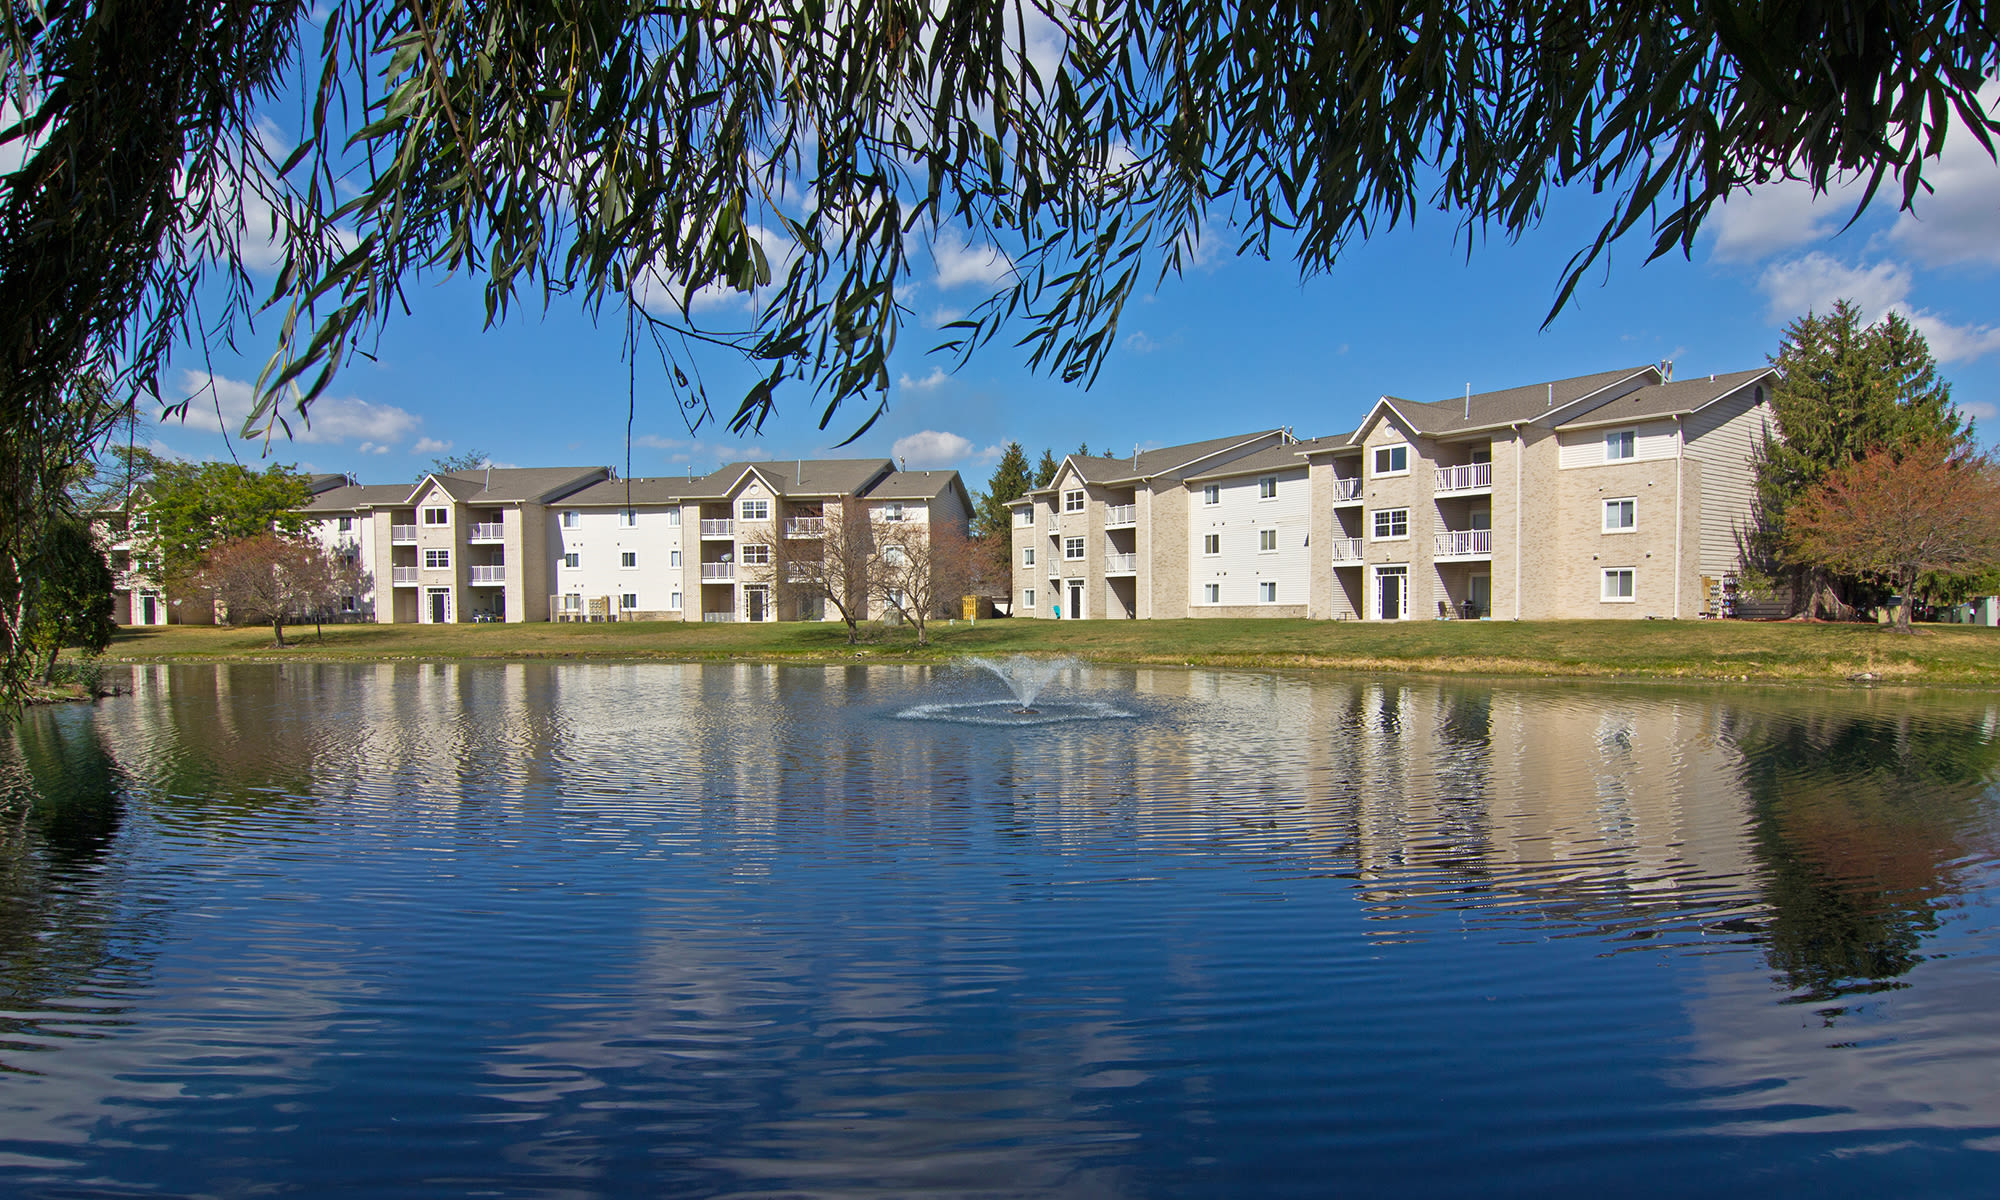 Apartments in Merrillville, Indiana